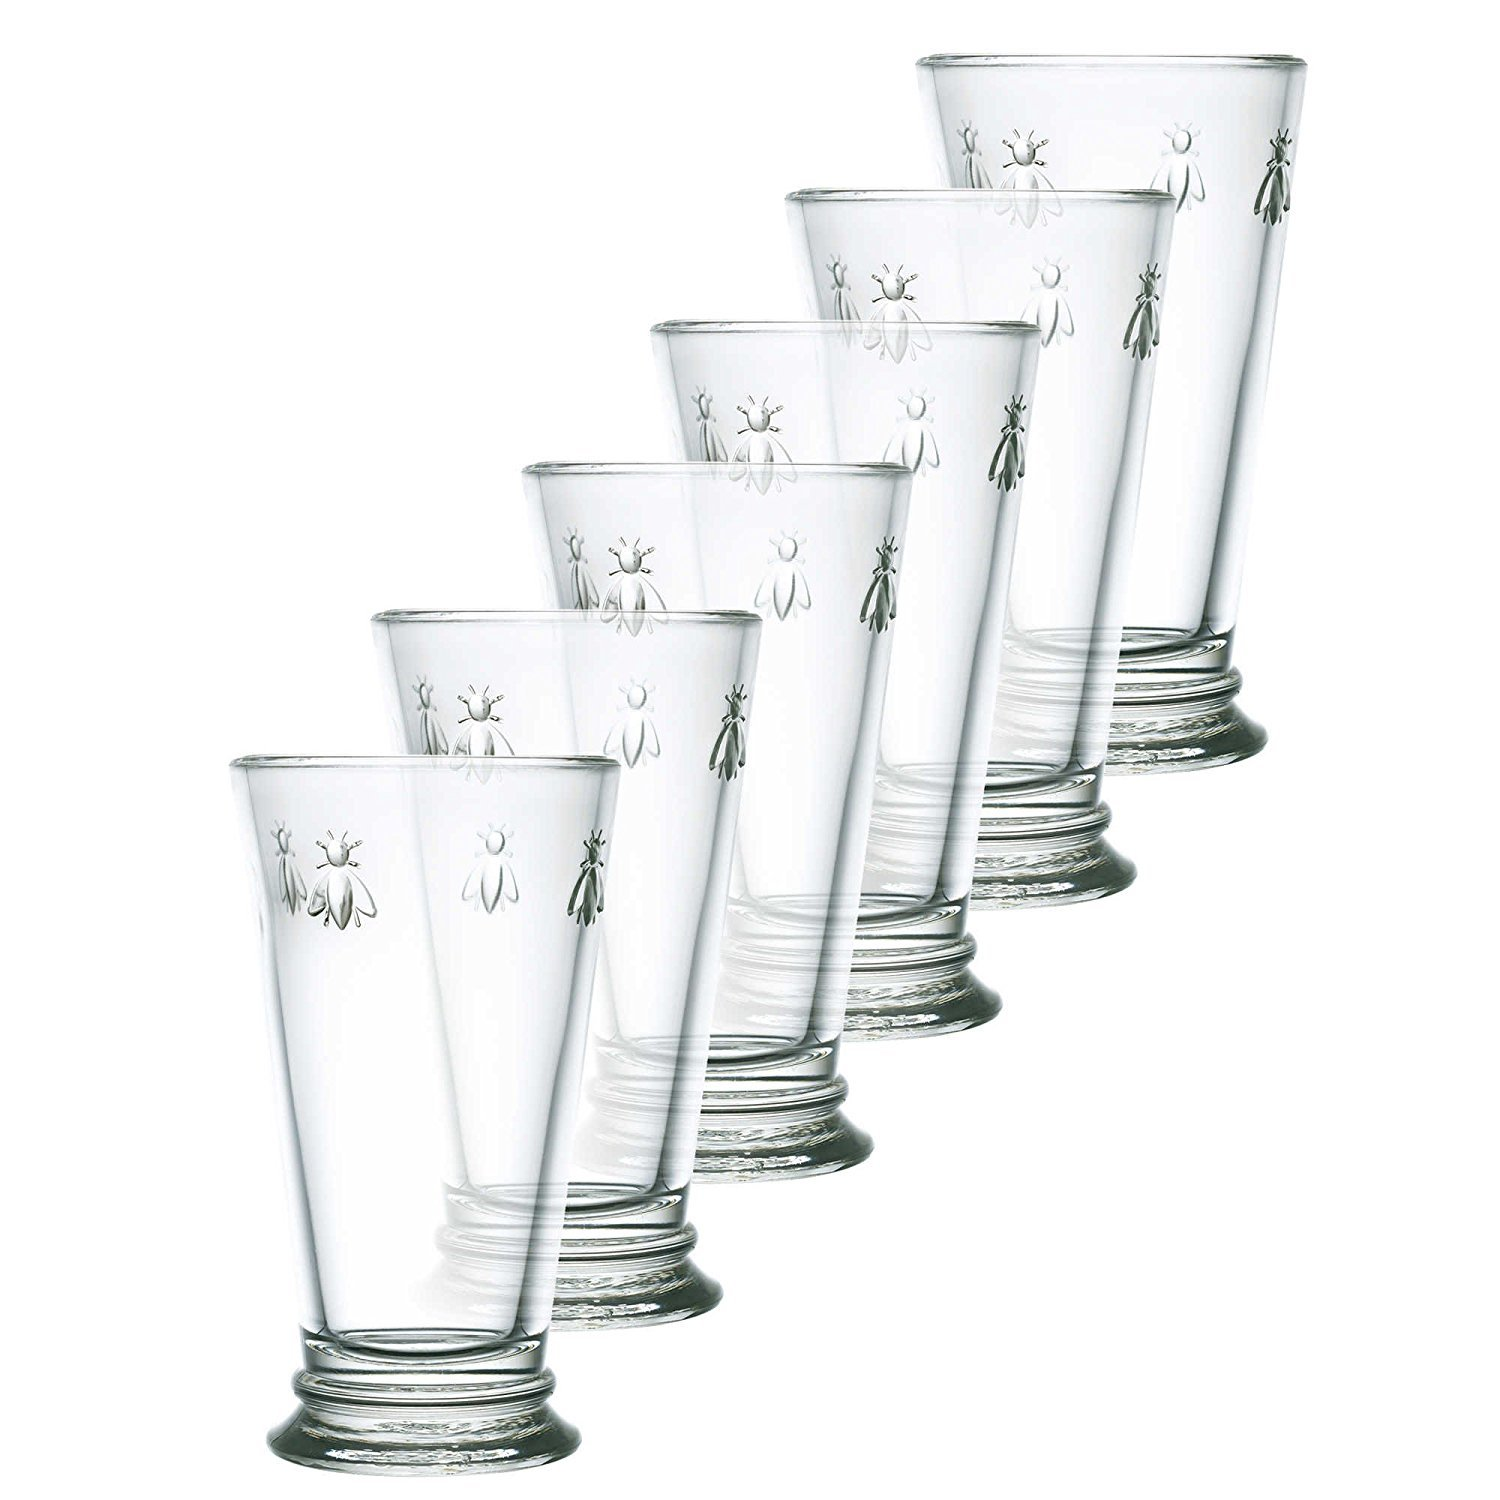 La Rochere, Set of 6, Tall Drinking Glasses (6.3'' Tall - High Ball), 15.6 Oz Each, Napoleonic Bee Pattern